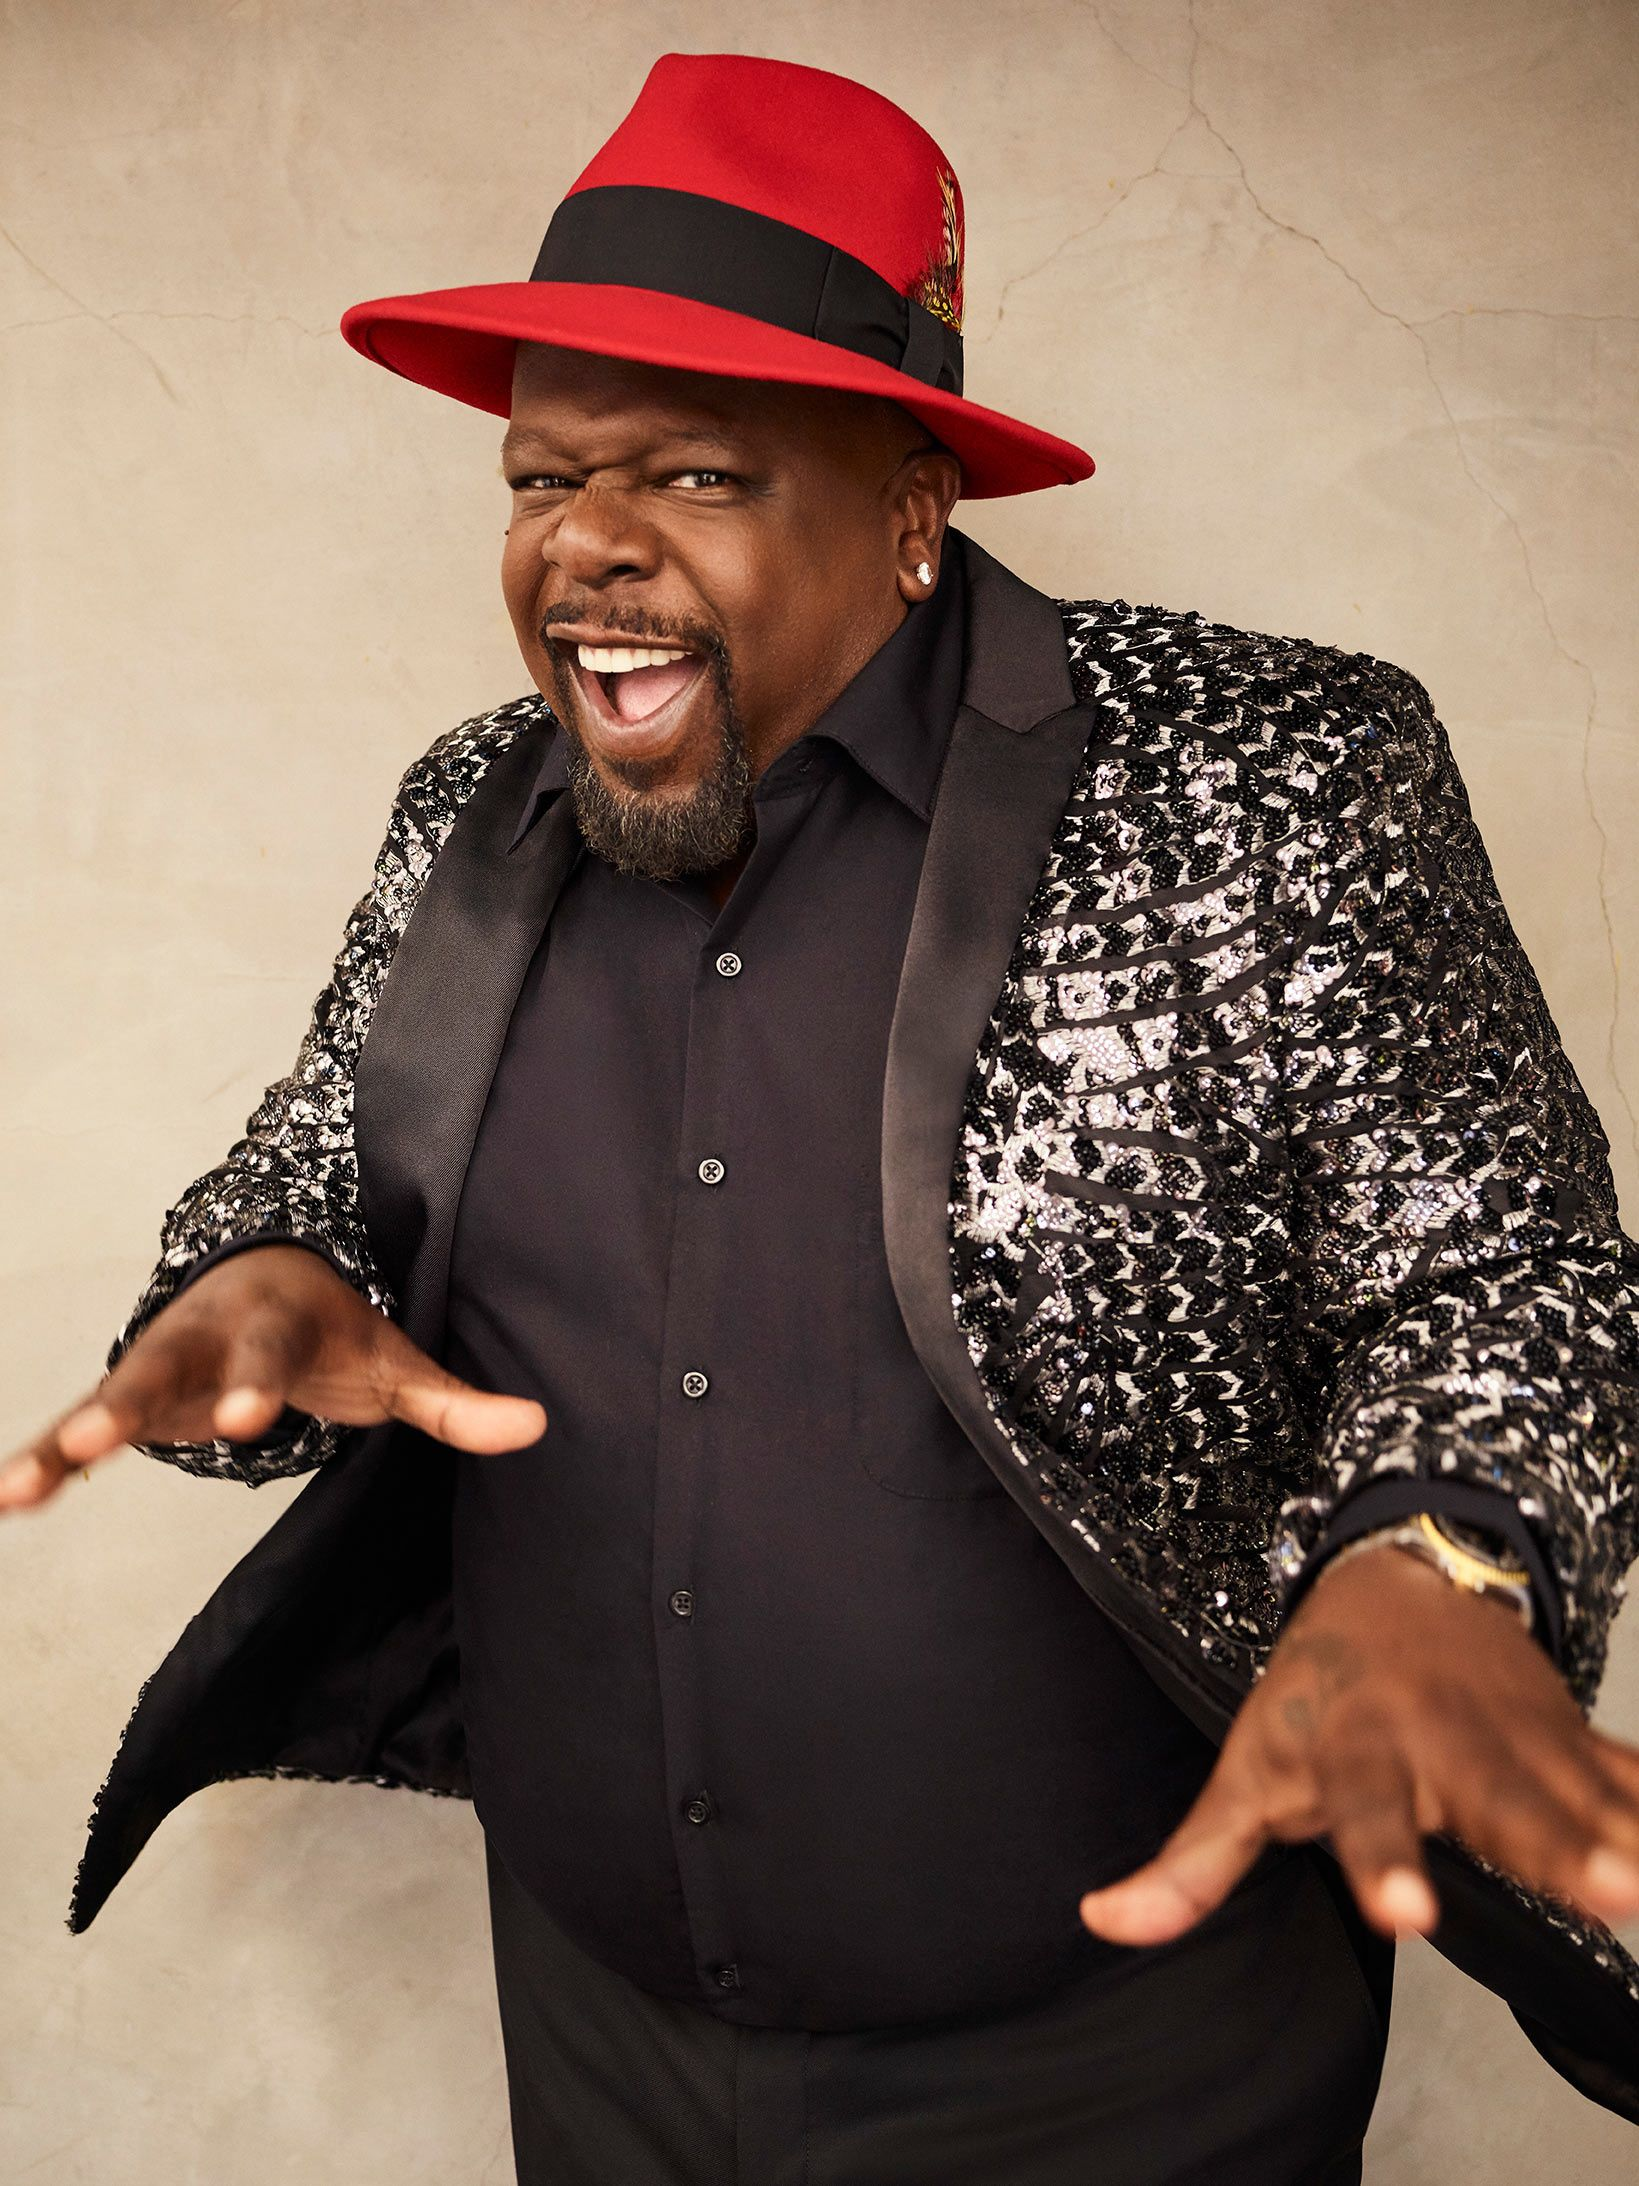 Cedric the Entertainer smiling and wearing a glittery sportscoat.